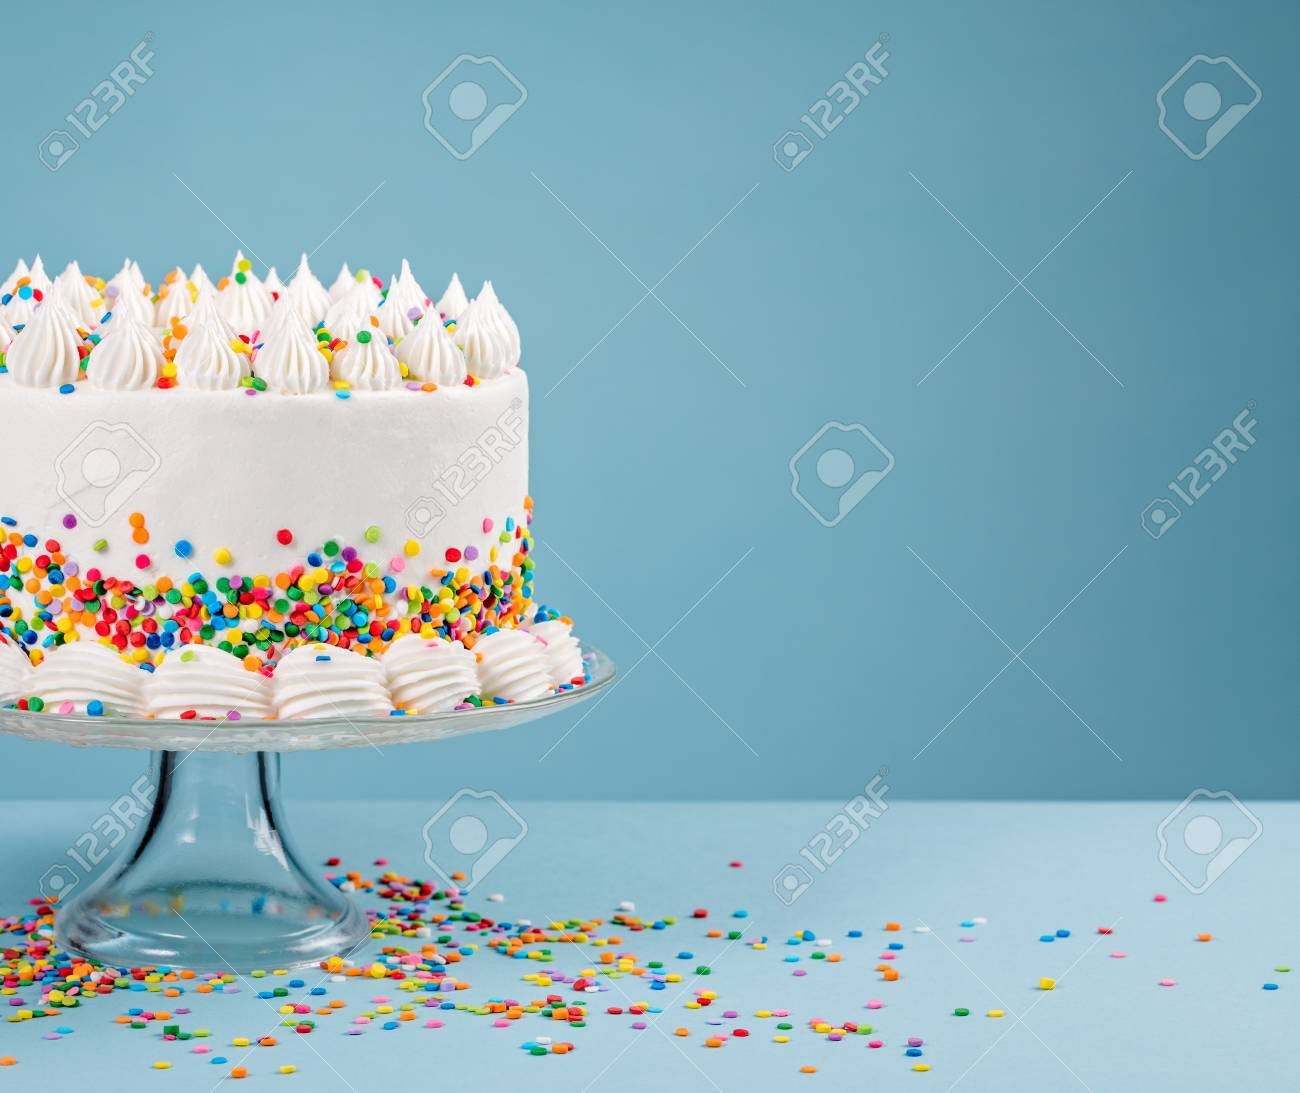 Tremendous White Birthday Cake With Colorful Sprinkles Over A Blue Background Funny Birthday Cards Online Aeocydamsfinfo